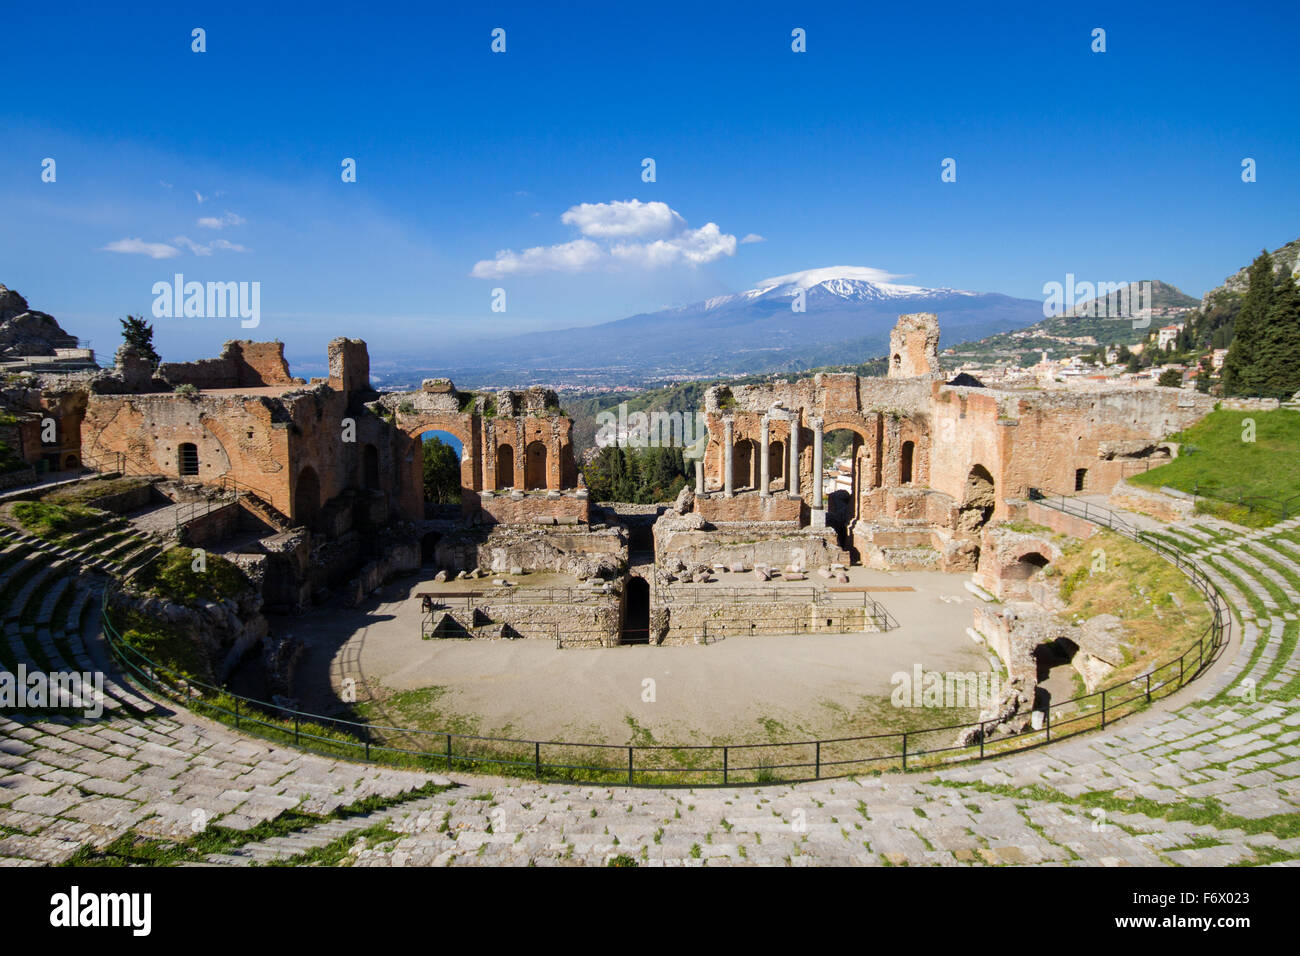 Ancient Greek theater of Taormina, Sicily, Italy - Stock Image